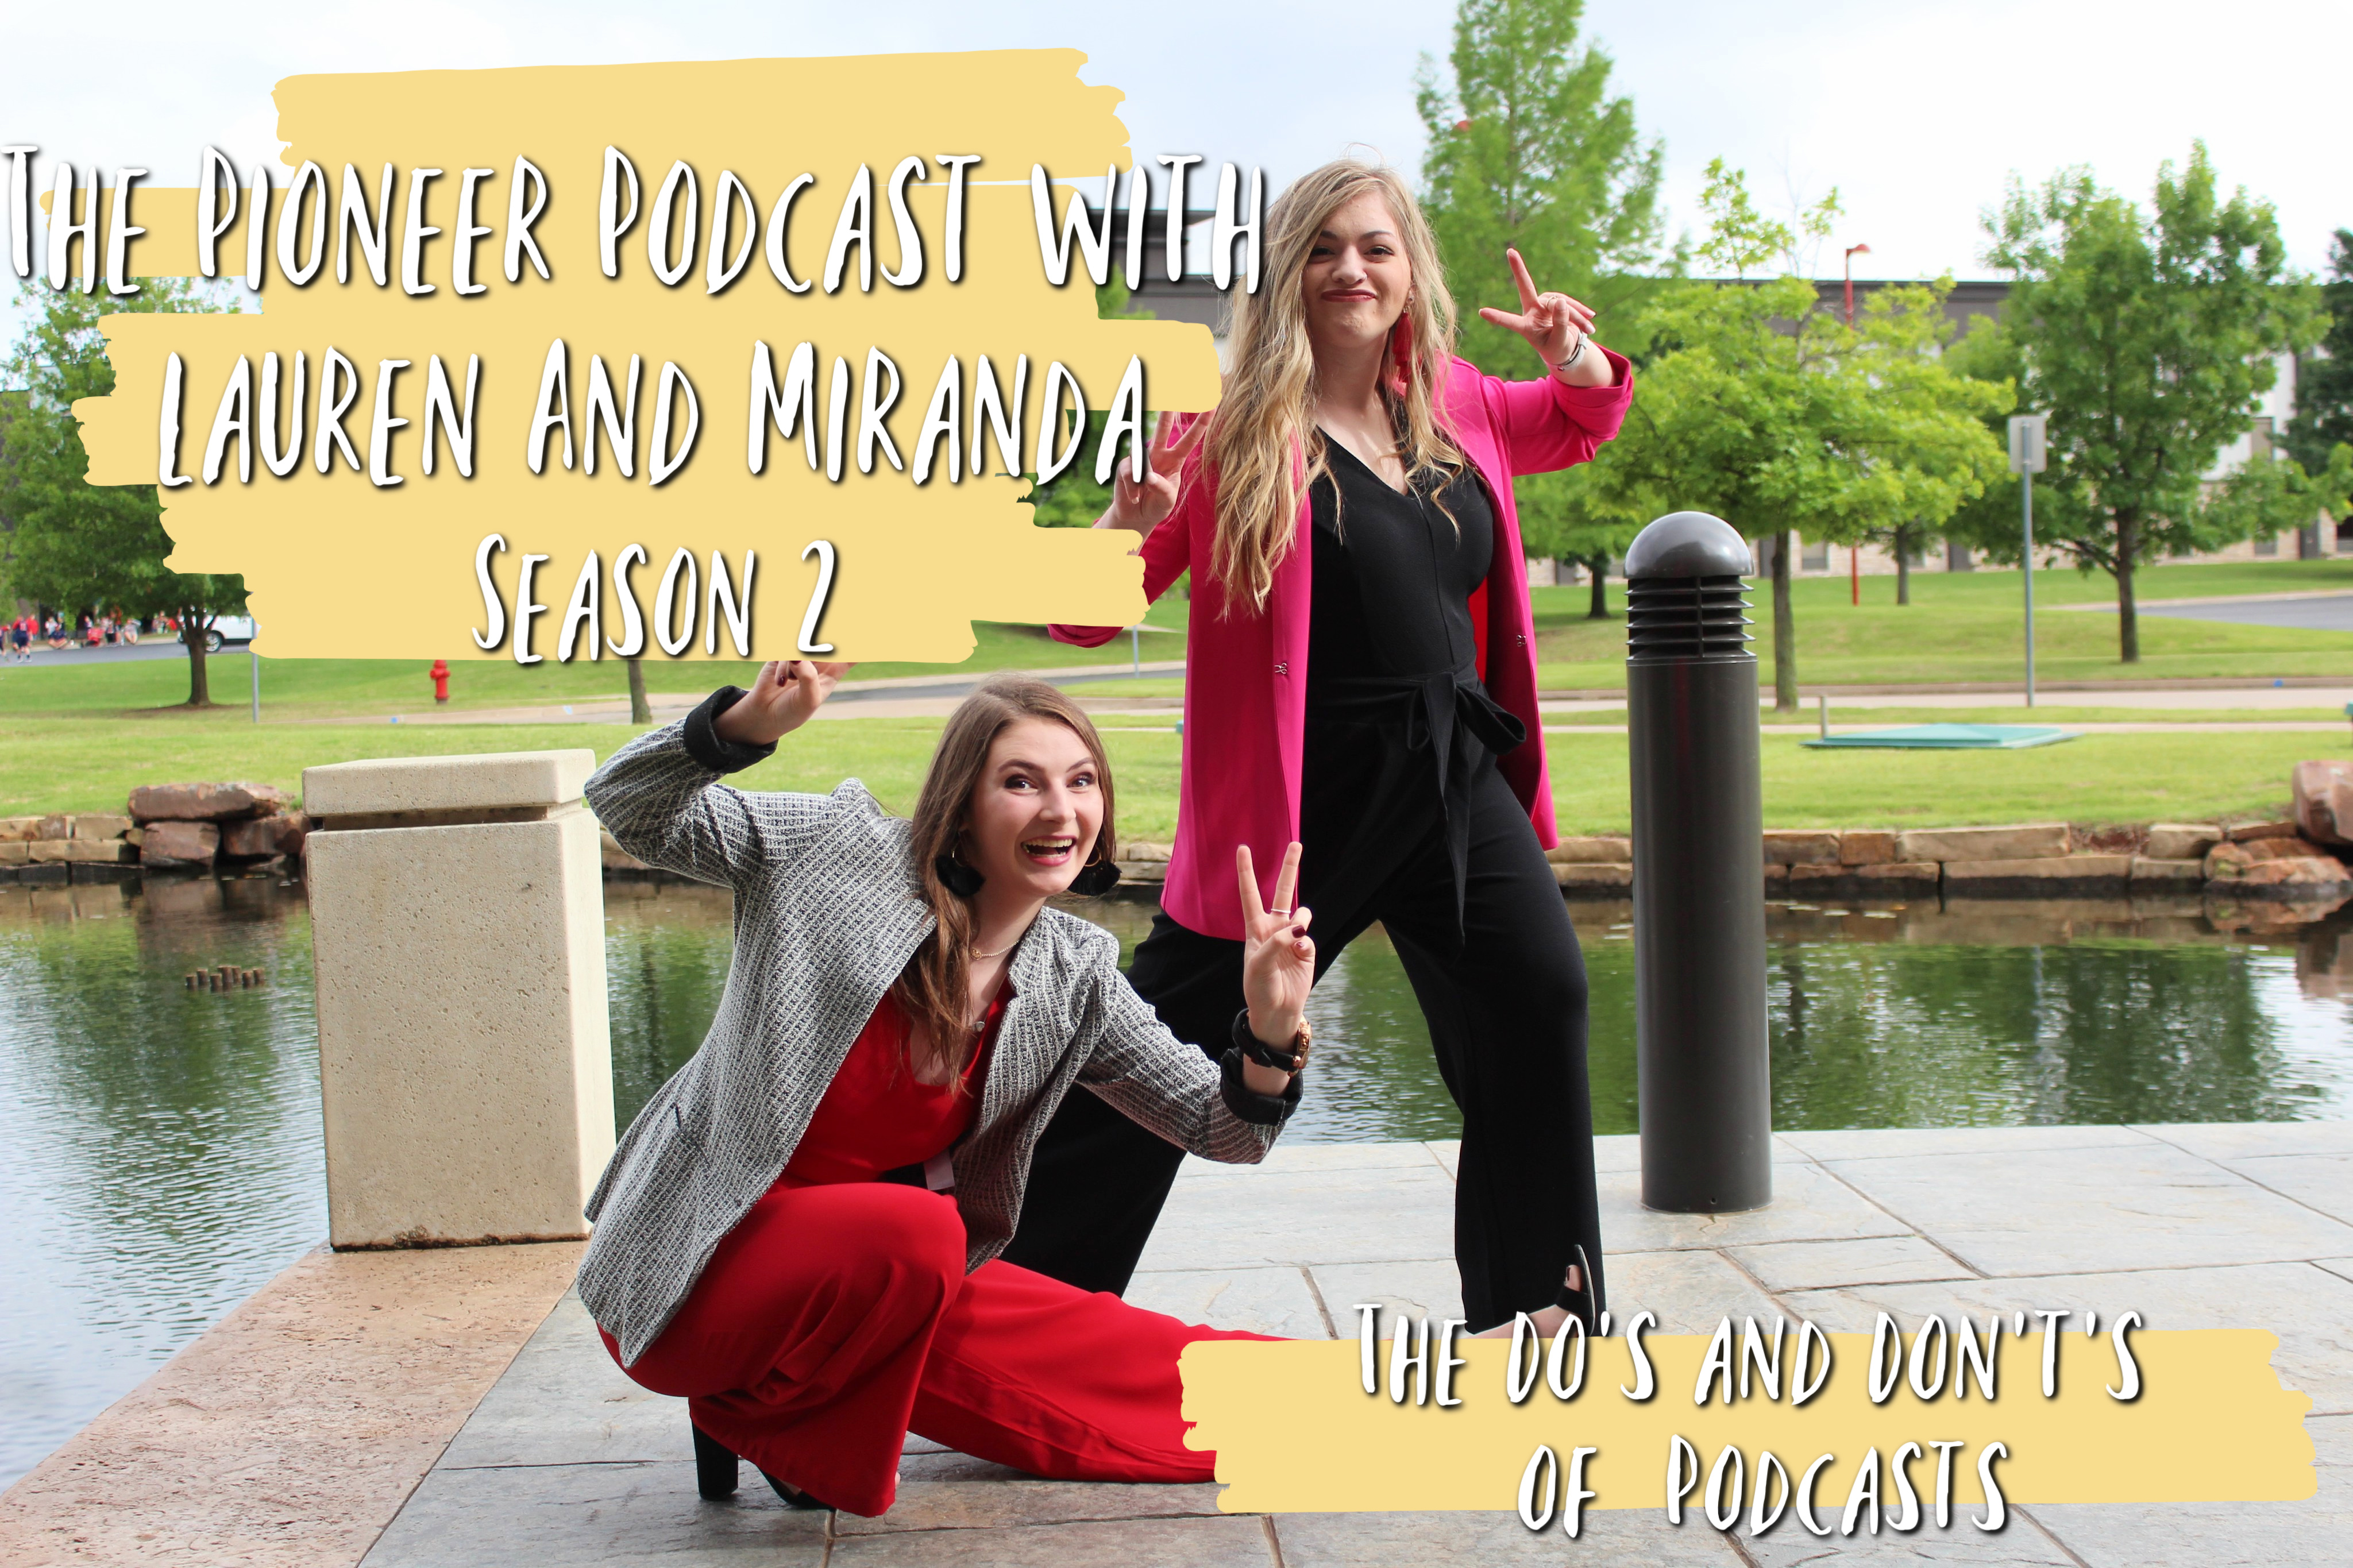 The Pioneer Podcast with Lauren and Miranda, Season 2: The Do's and Don't's of Podcasts